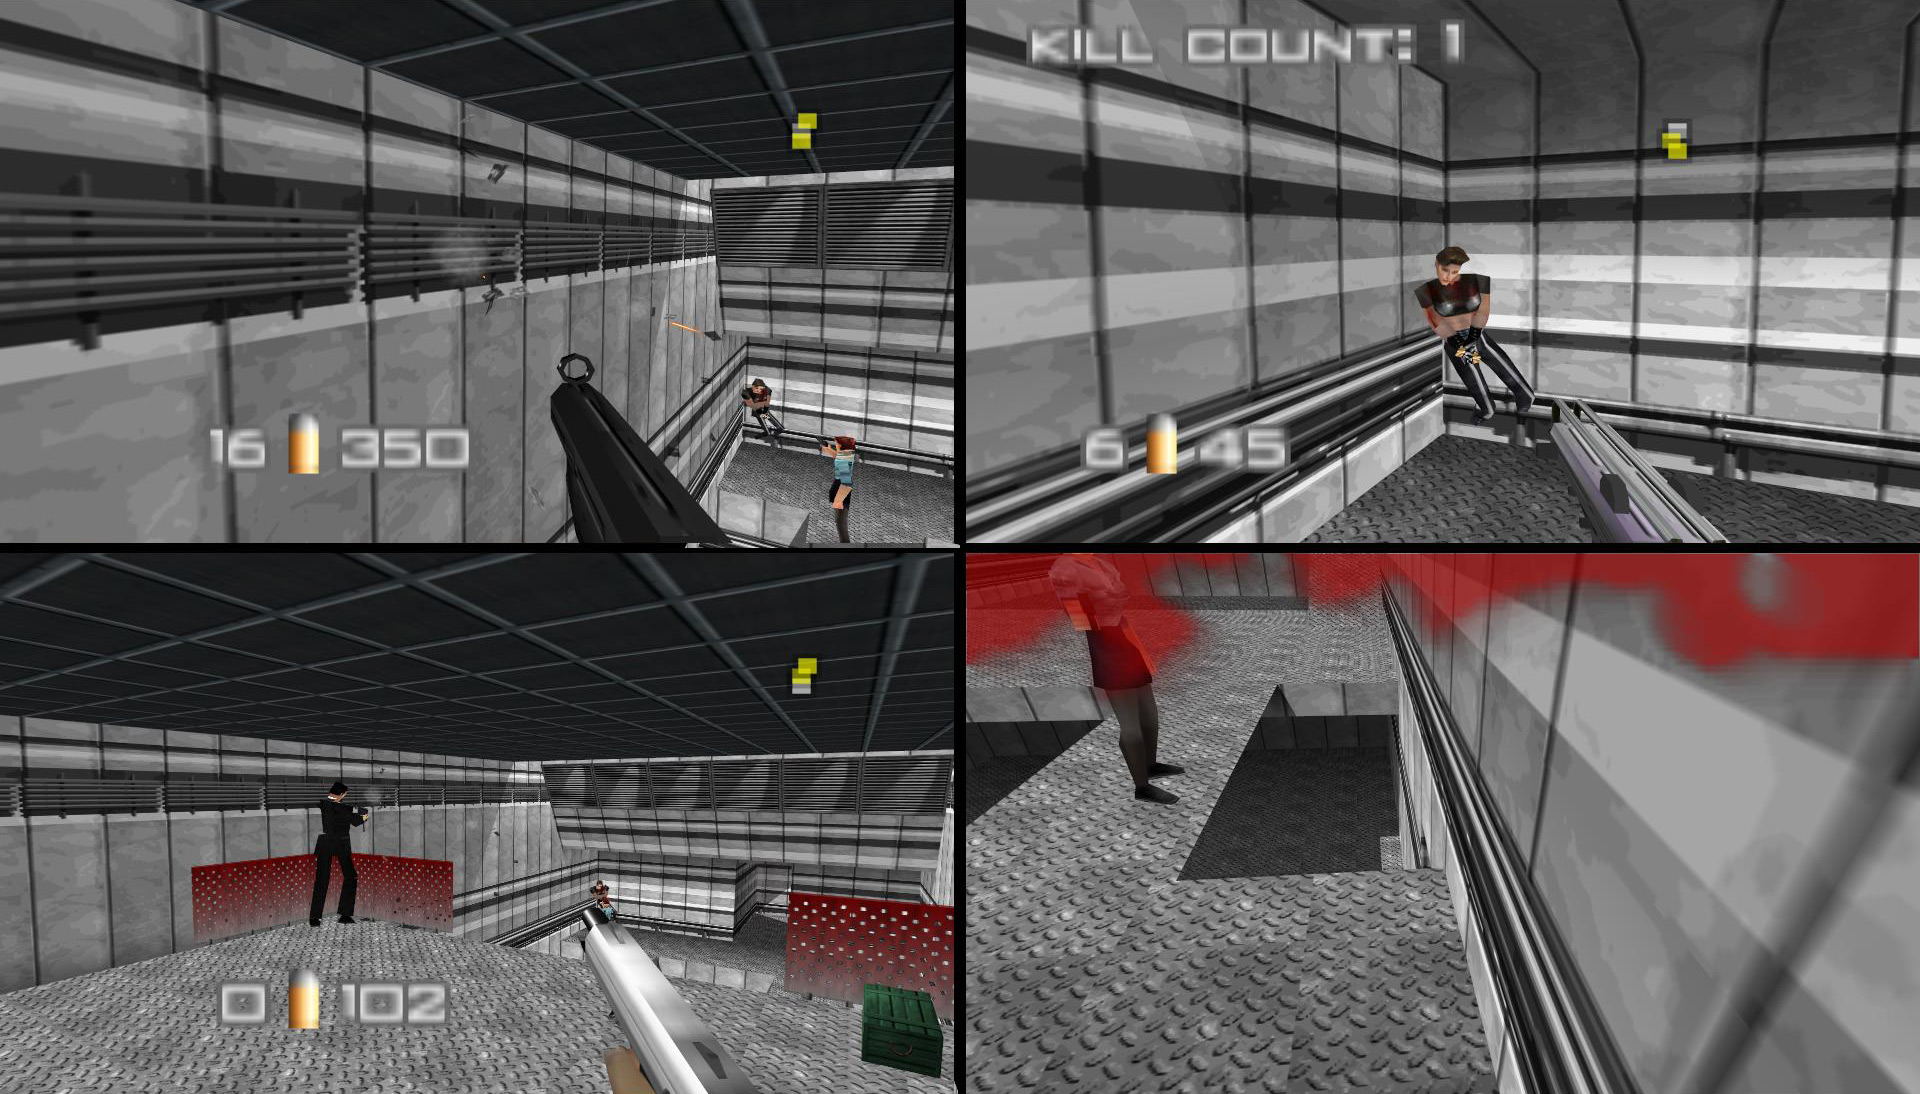 20 Years Later, GoldenEye 007 Is Still The Greatest Nintendo 64 Game